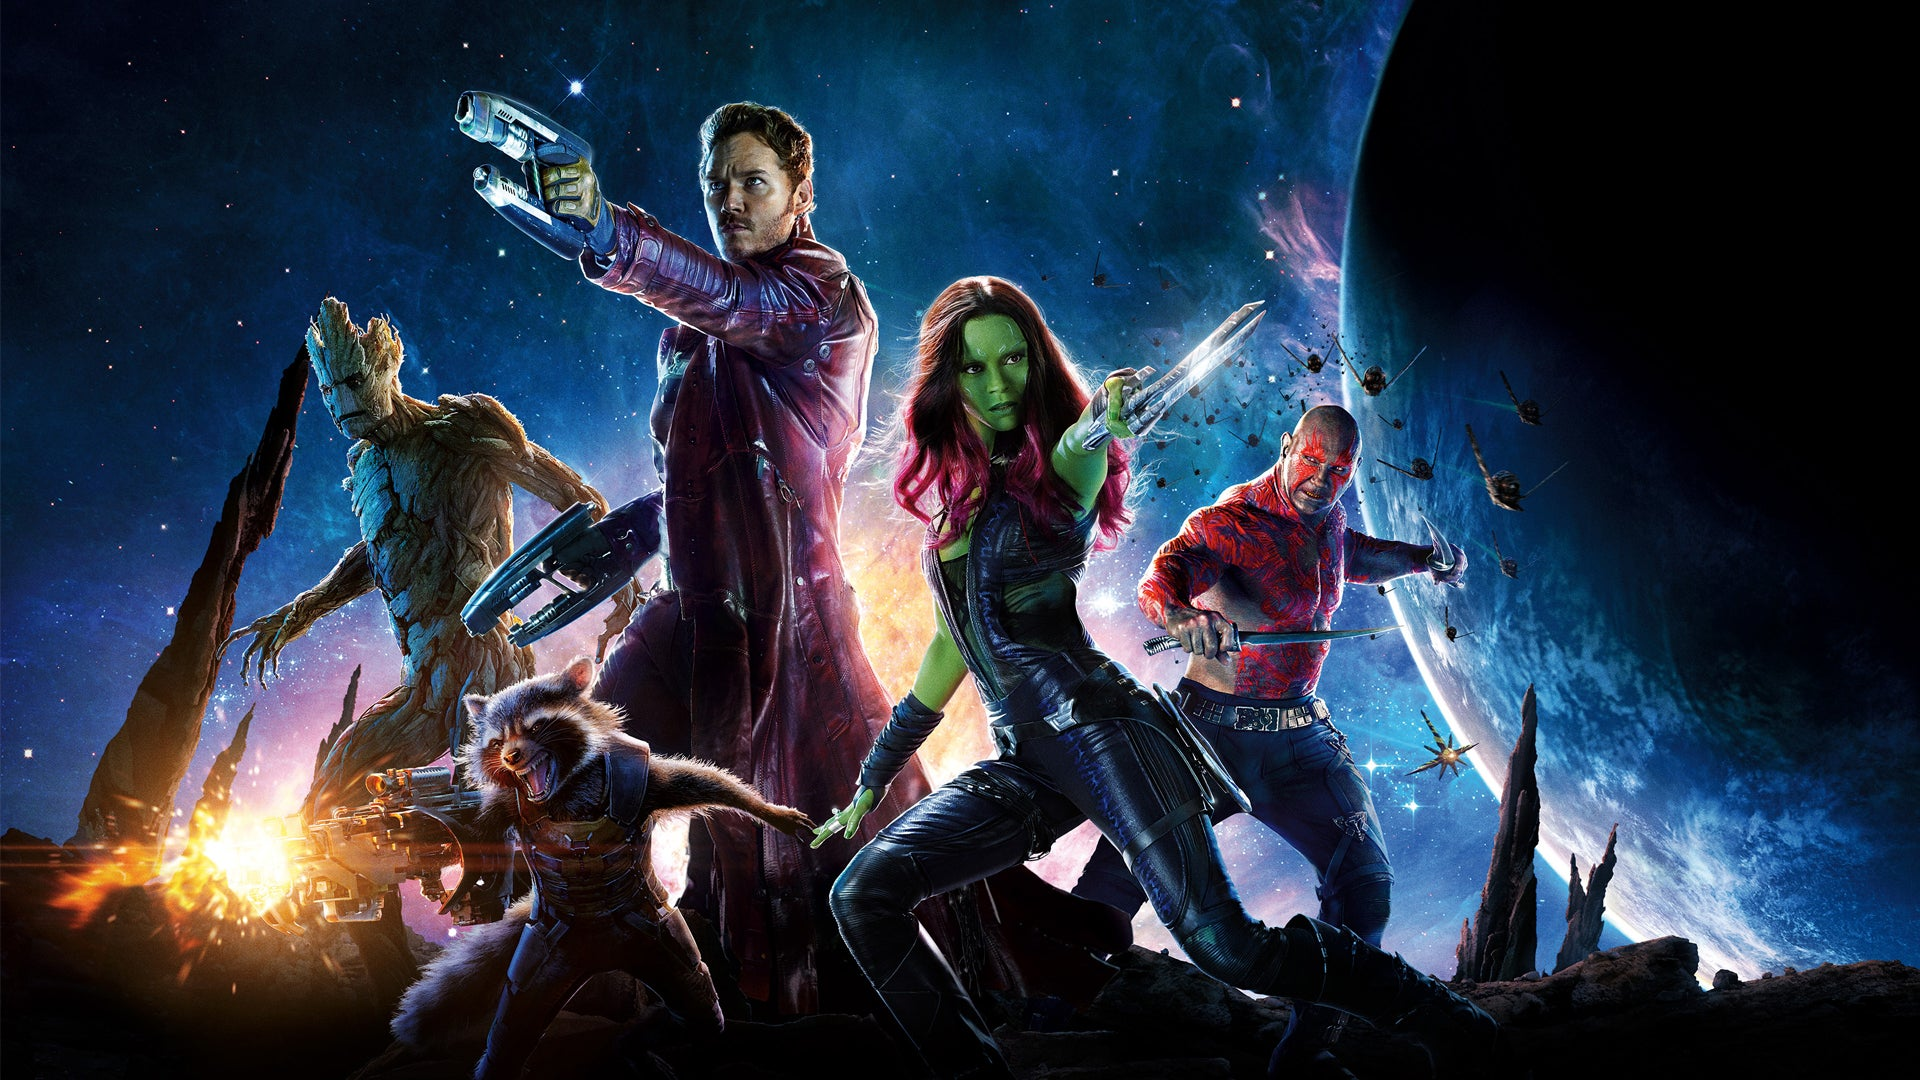 Marvel Studios: As unstoppable as its growing stable of